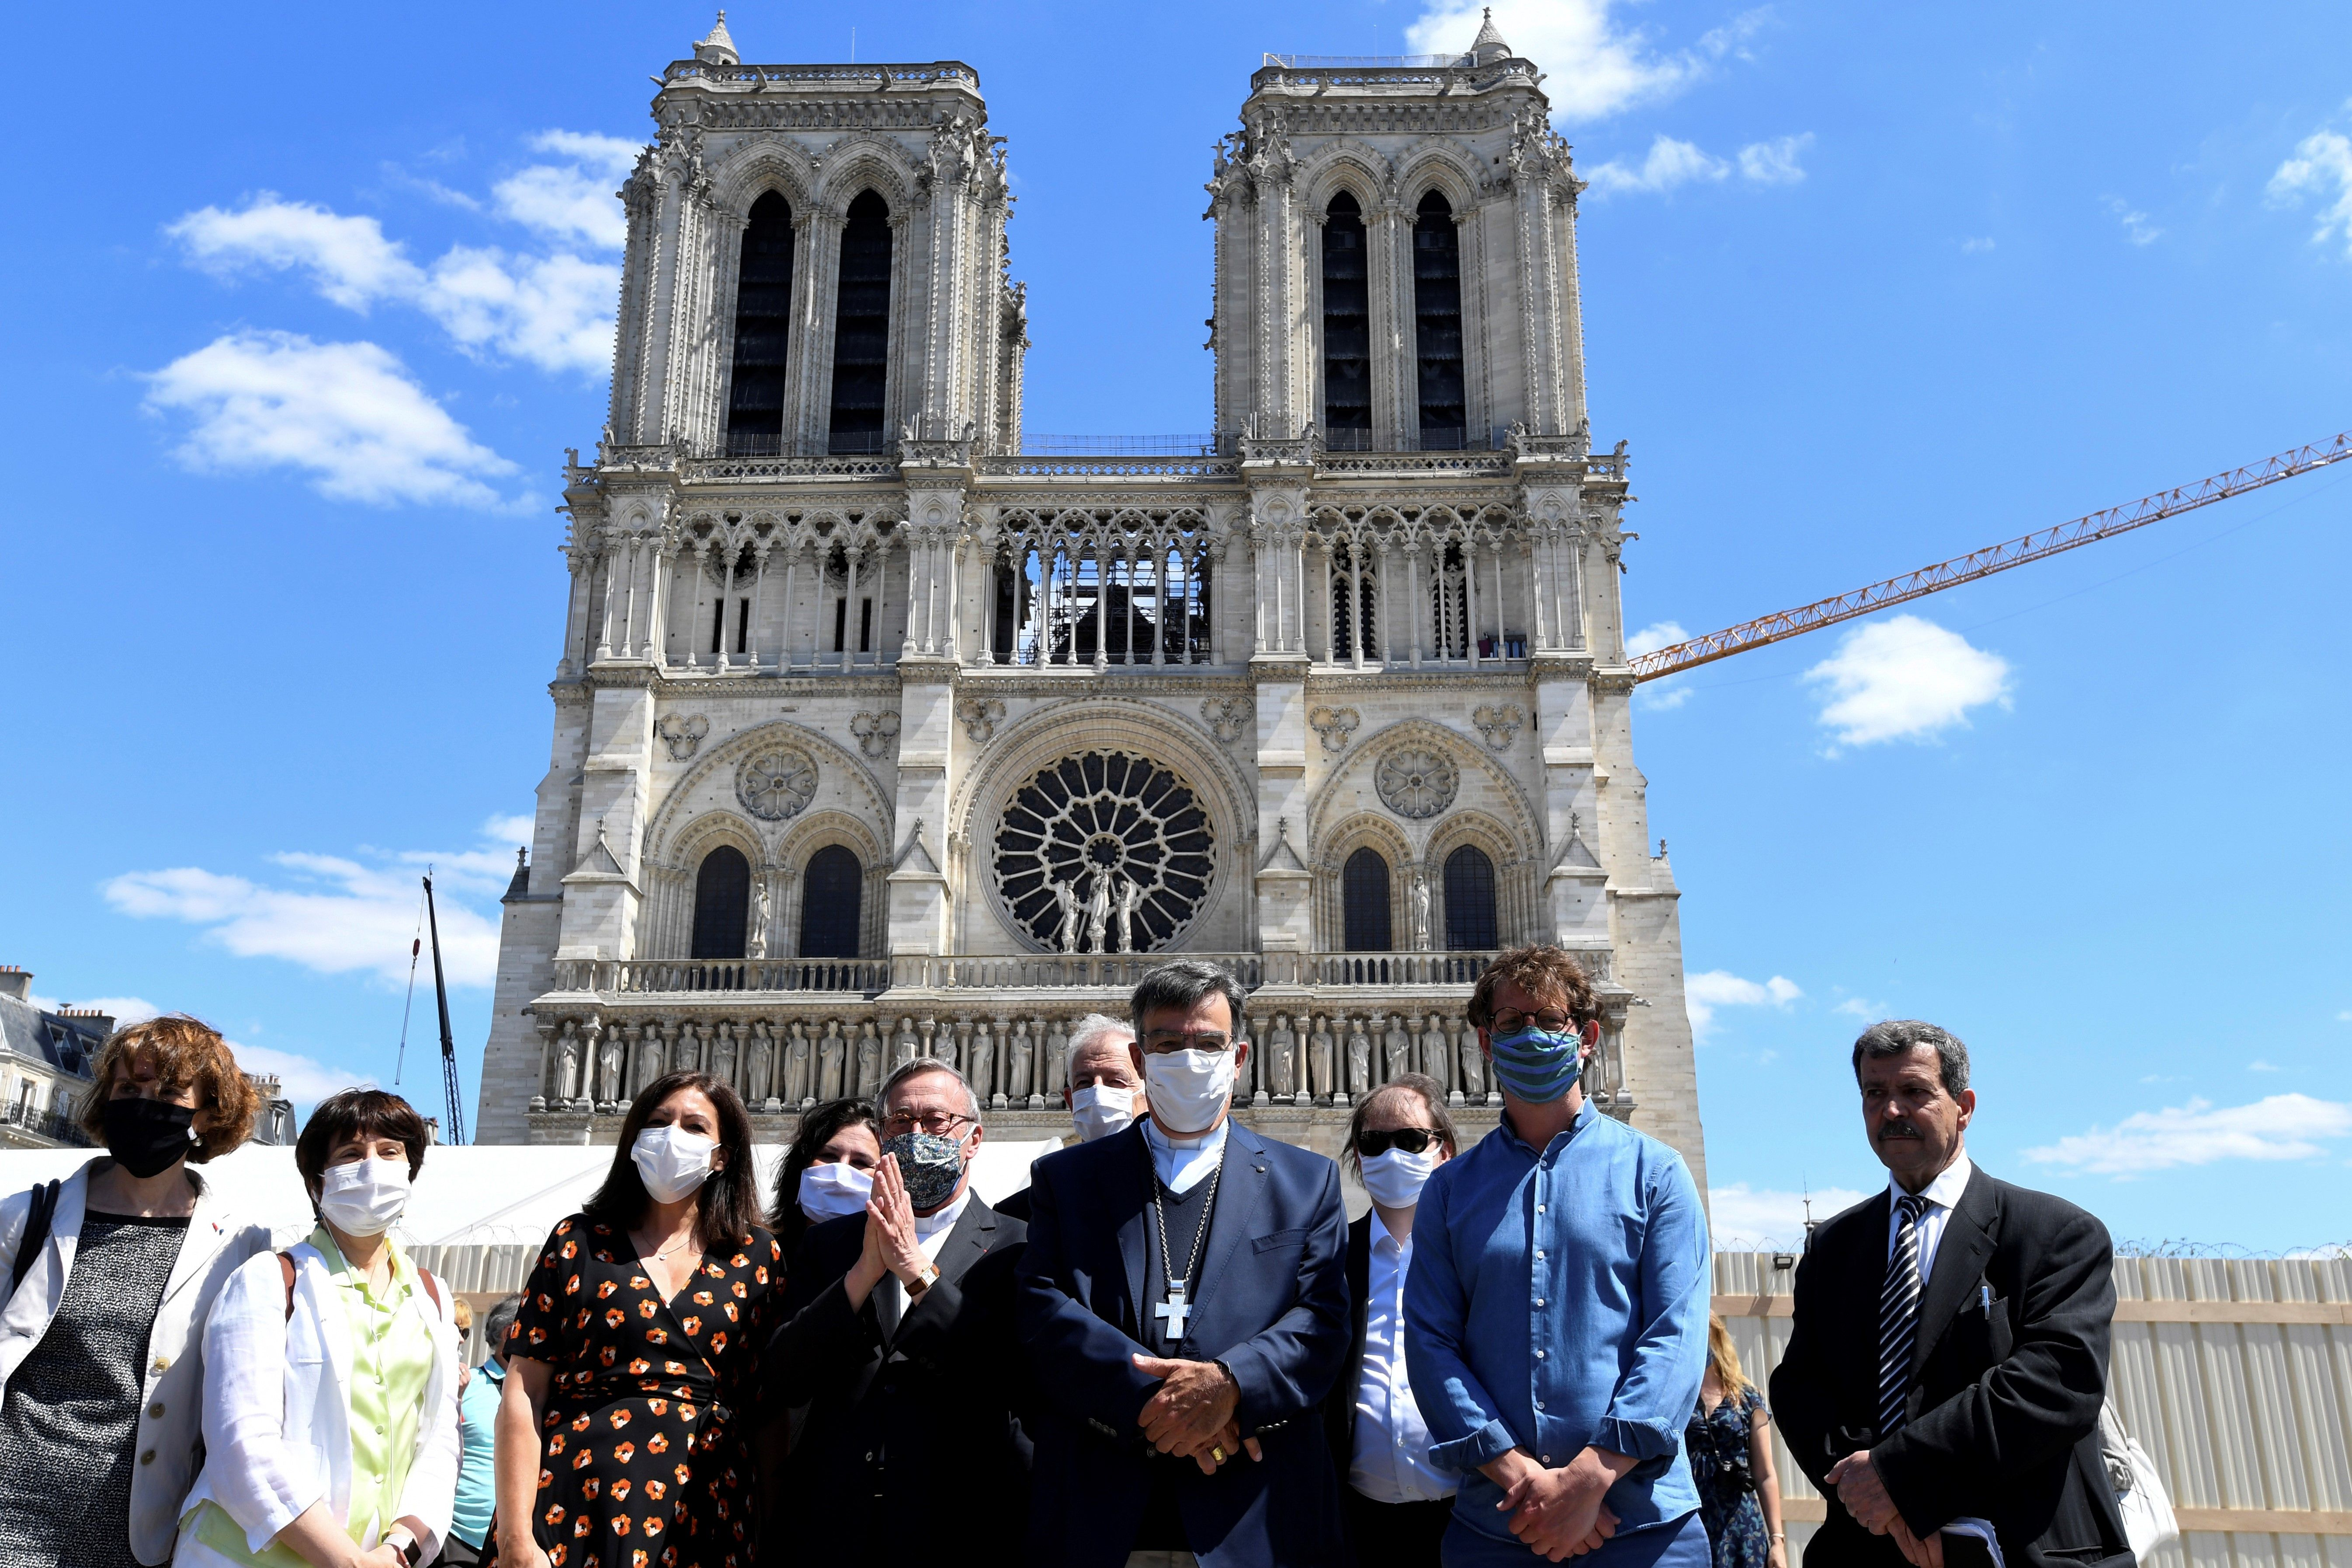 Notre Dame's Forecourt Has Reopened for First Time Since Last Year's Fire